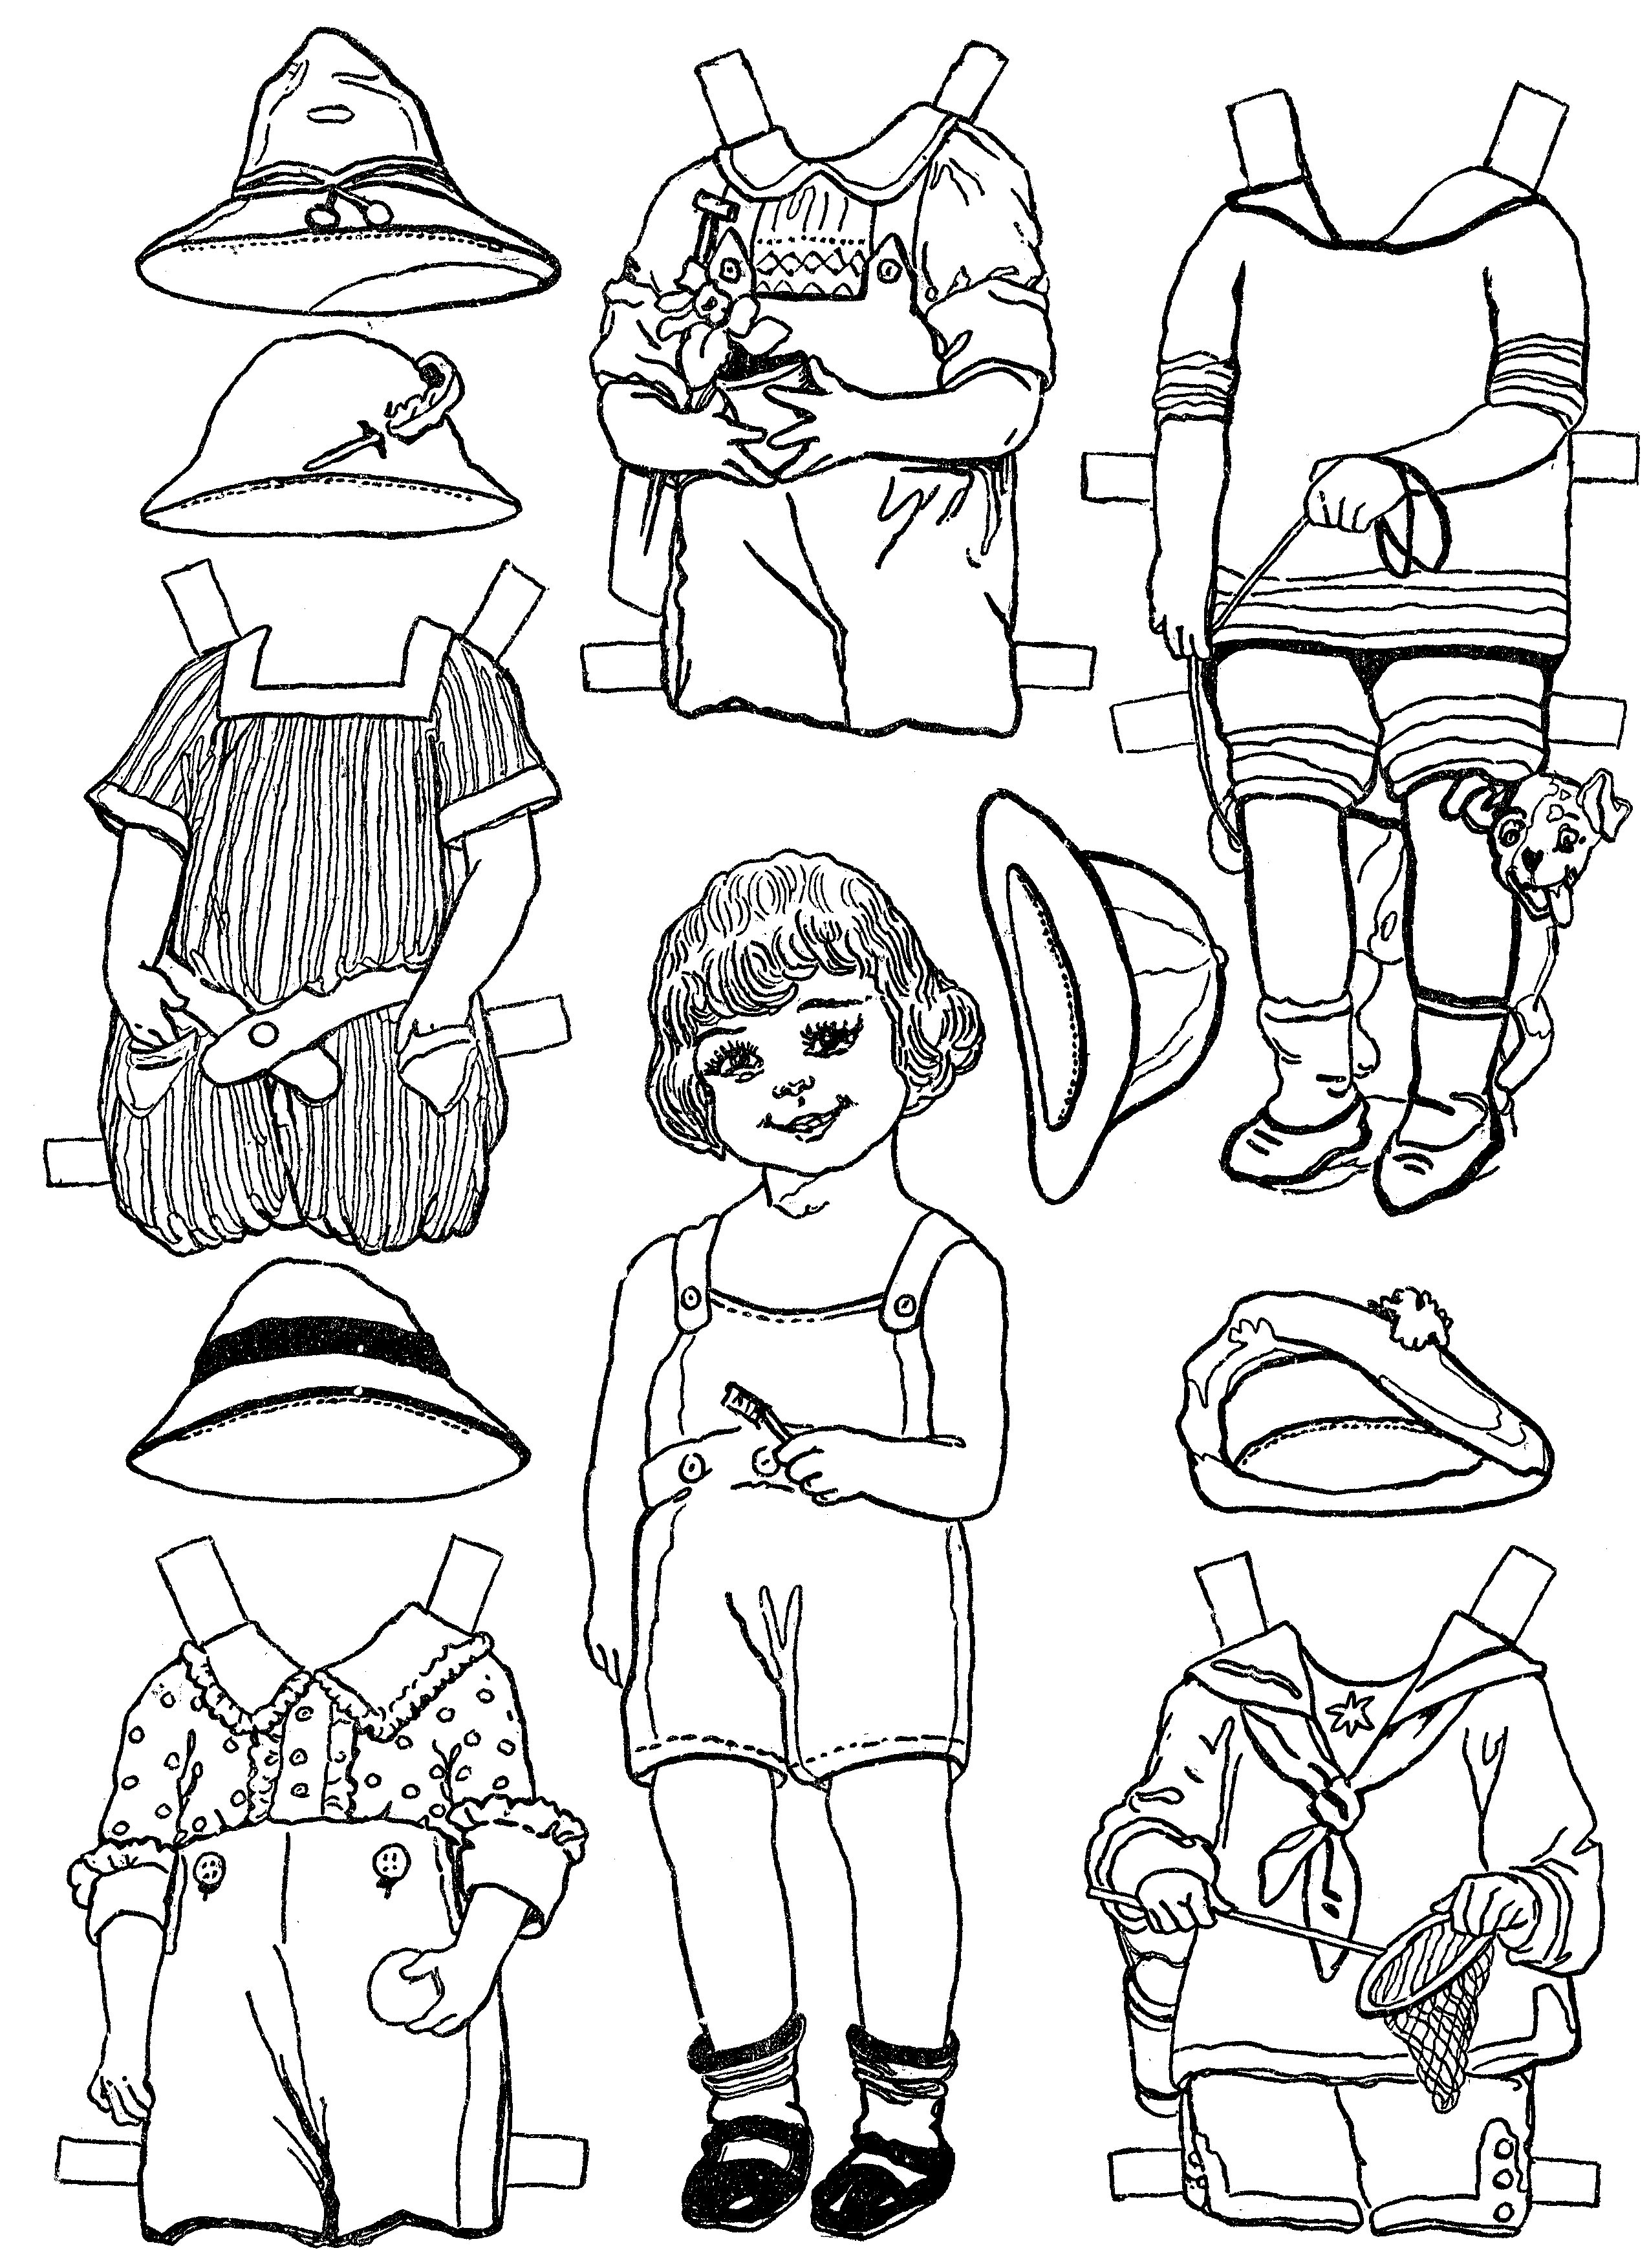 Paper Dolls And Paper Doll Dresses – Printable From Kid Fun – - Printable Paper Dolls To Color Free